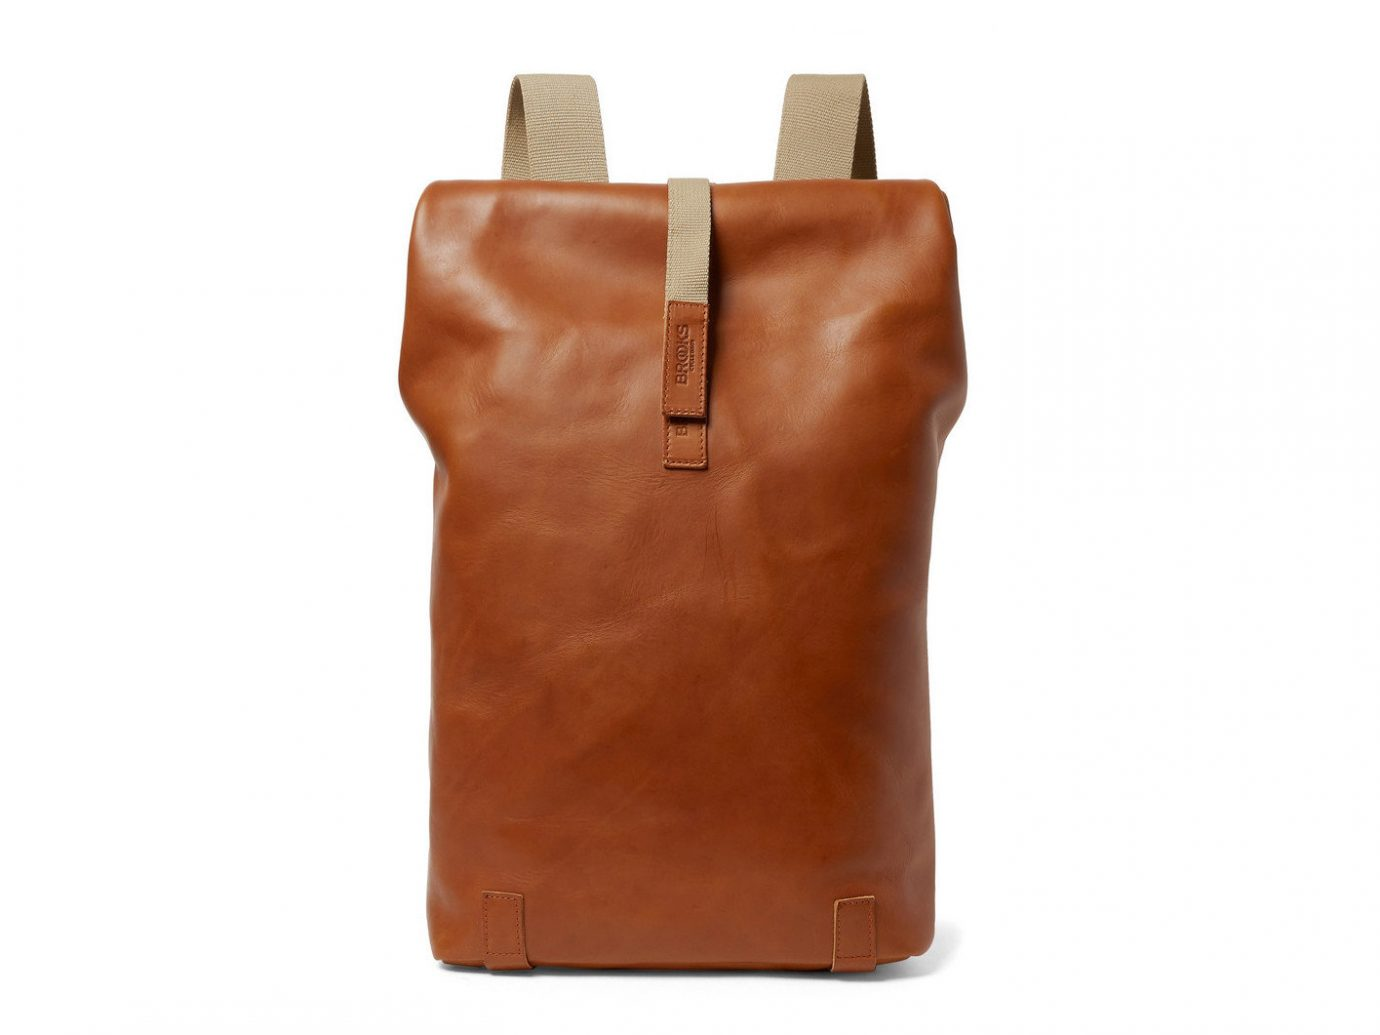 Style + Design Travel Shop accessory case brown bag leather caramel color product shoulder bag product design handbag